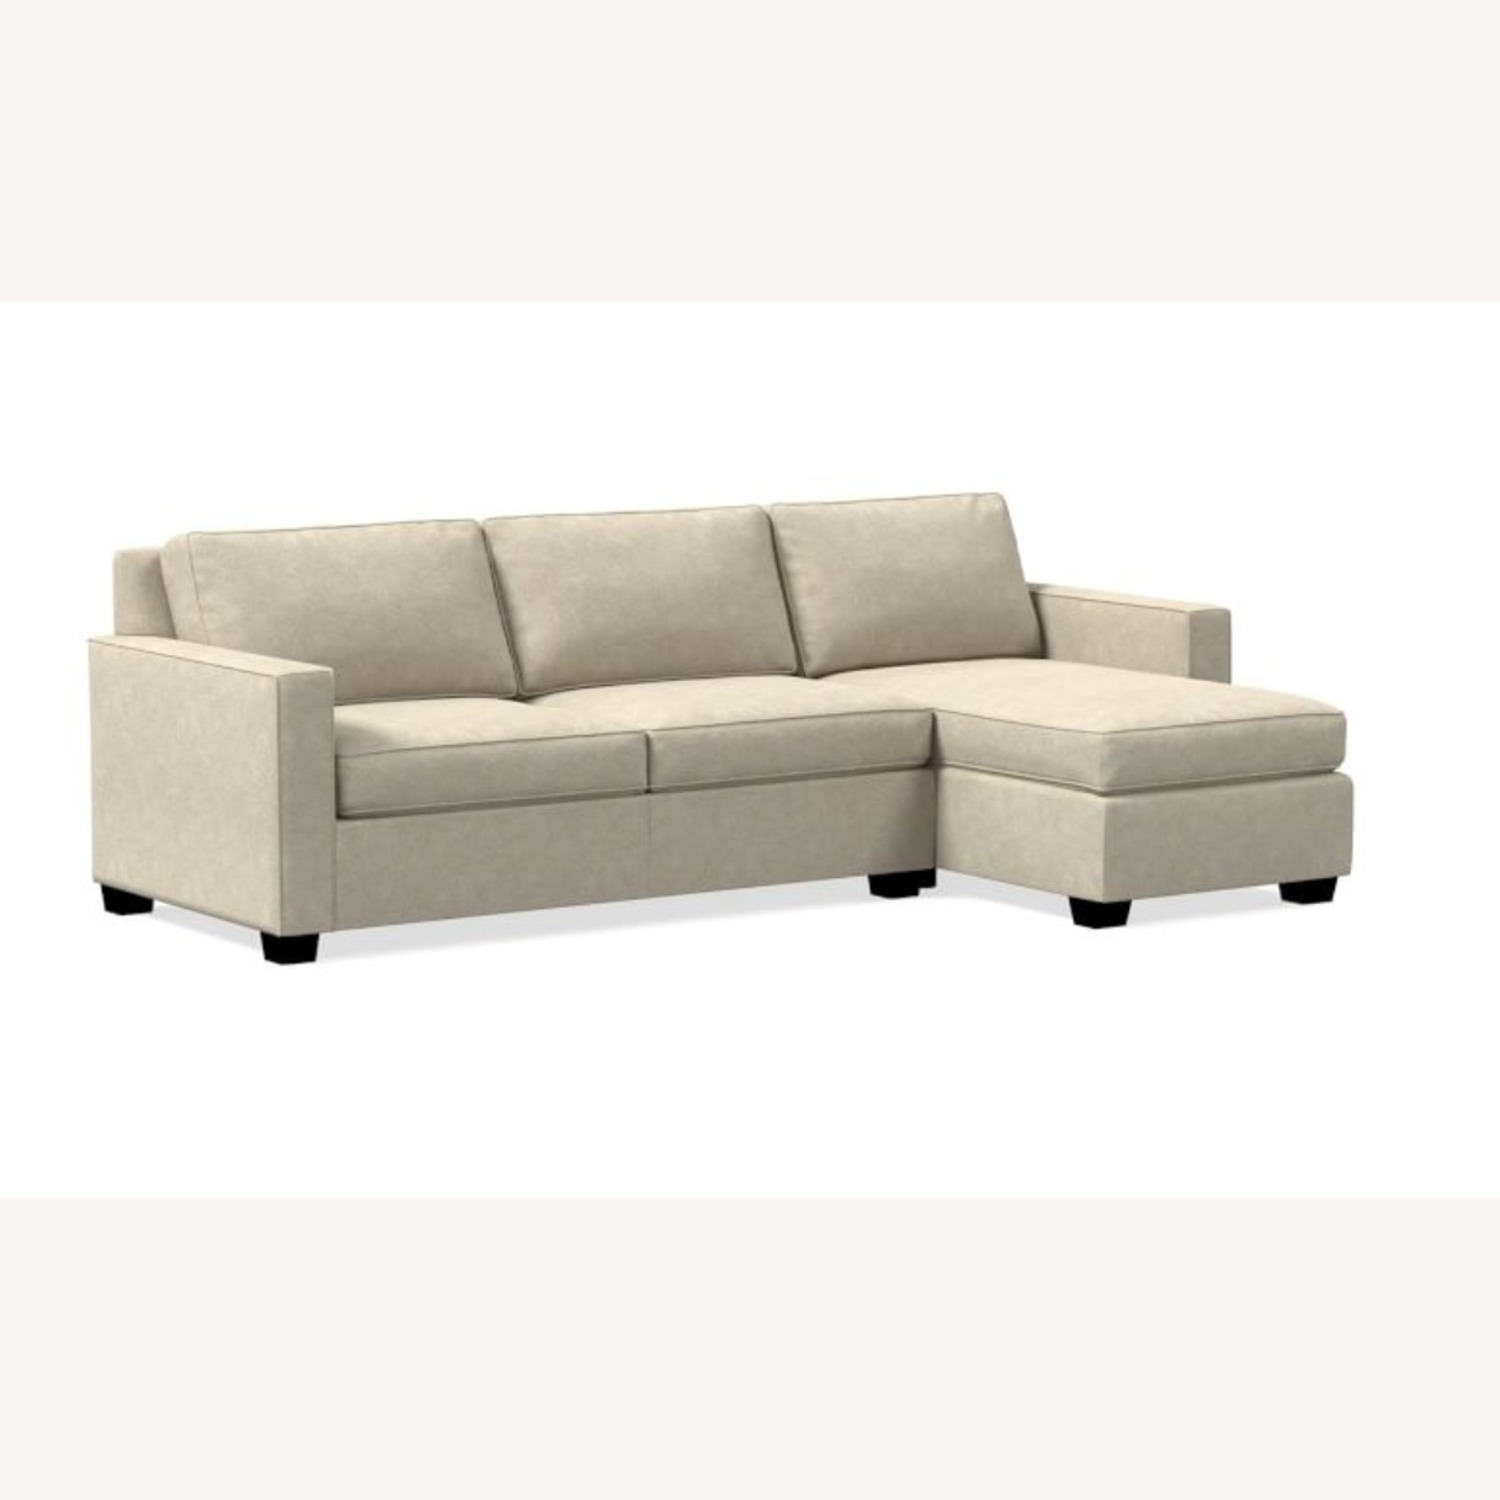 West Elm Henry 2-Piece Full Sleeper Sectional - image-1